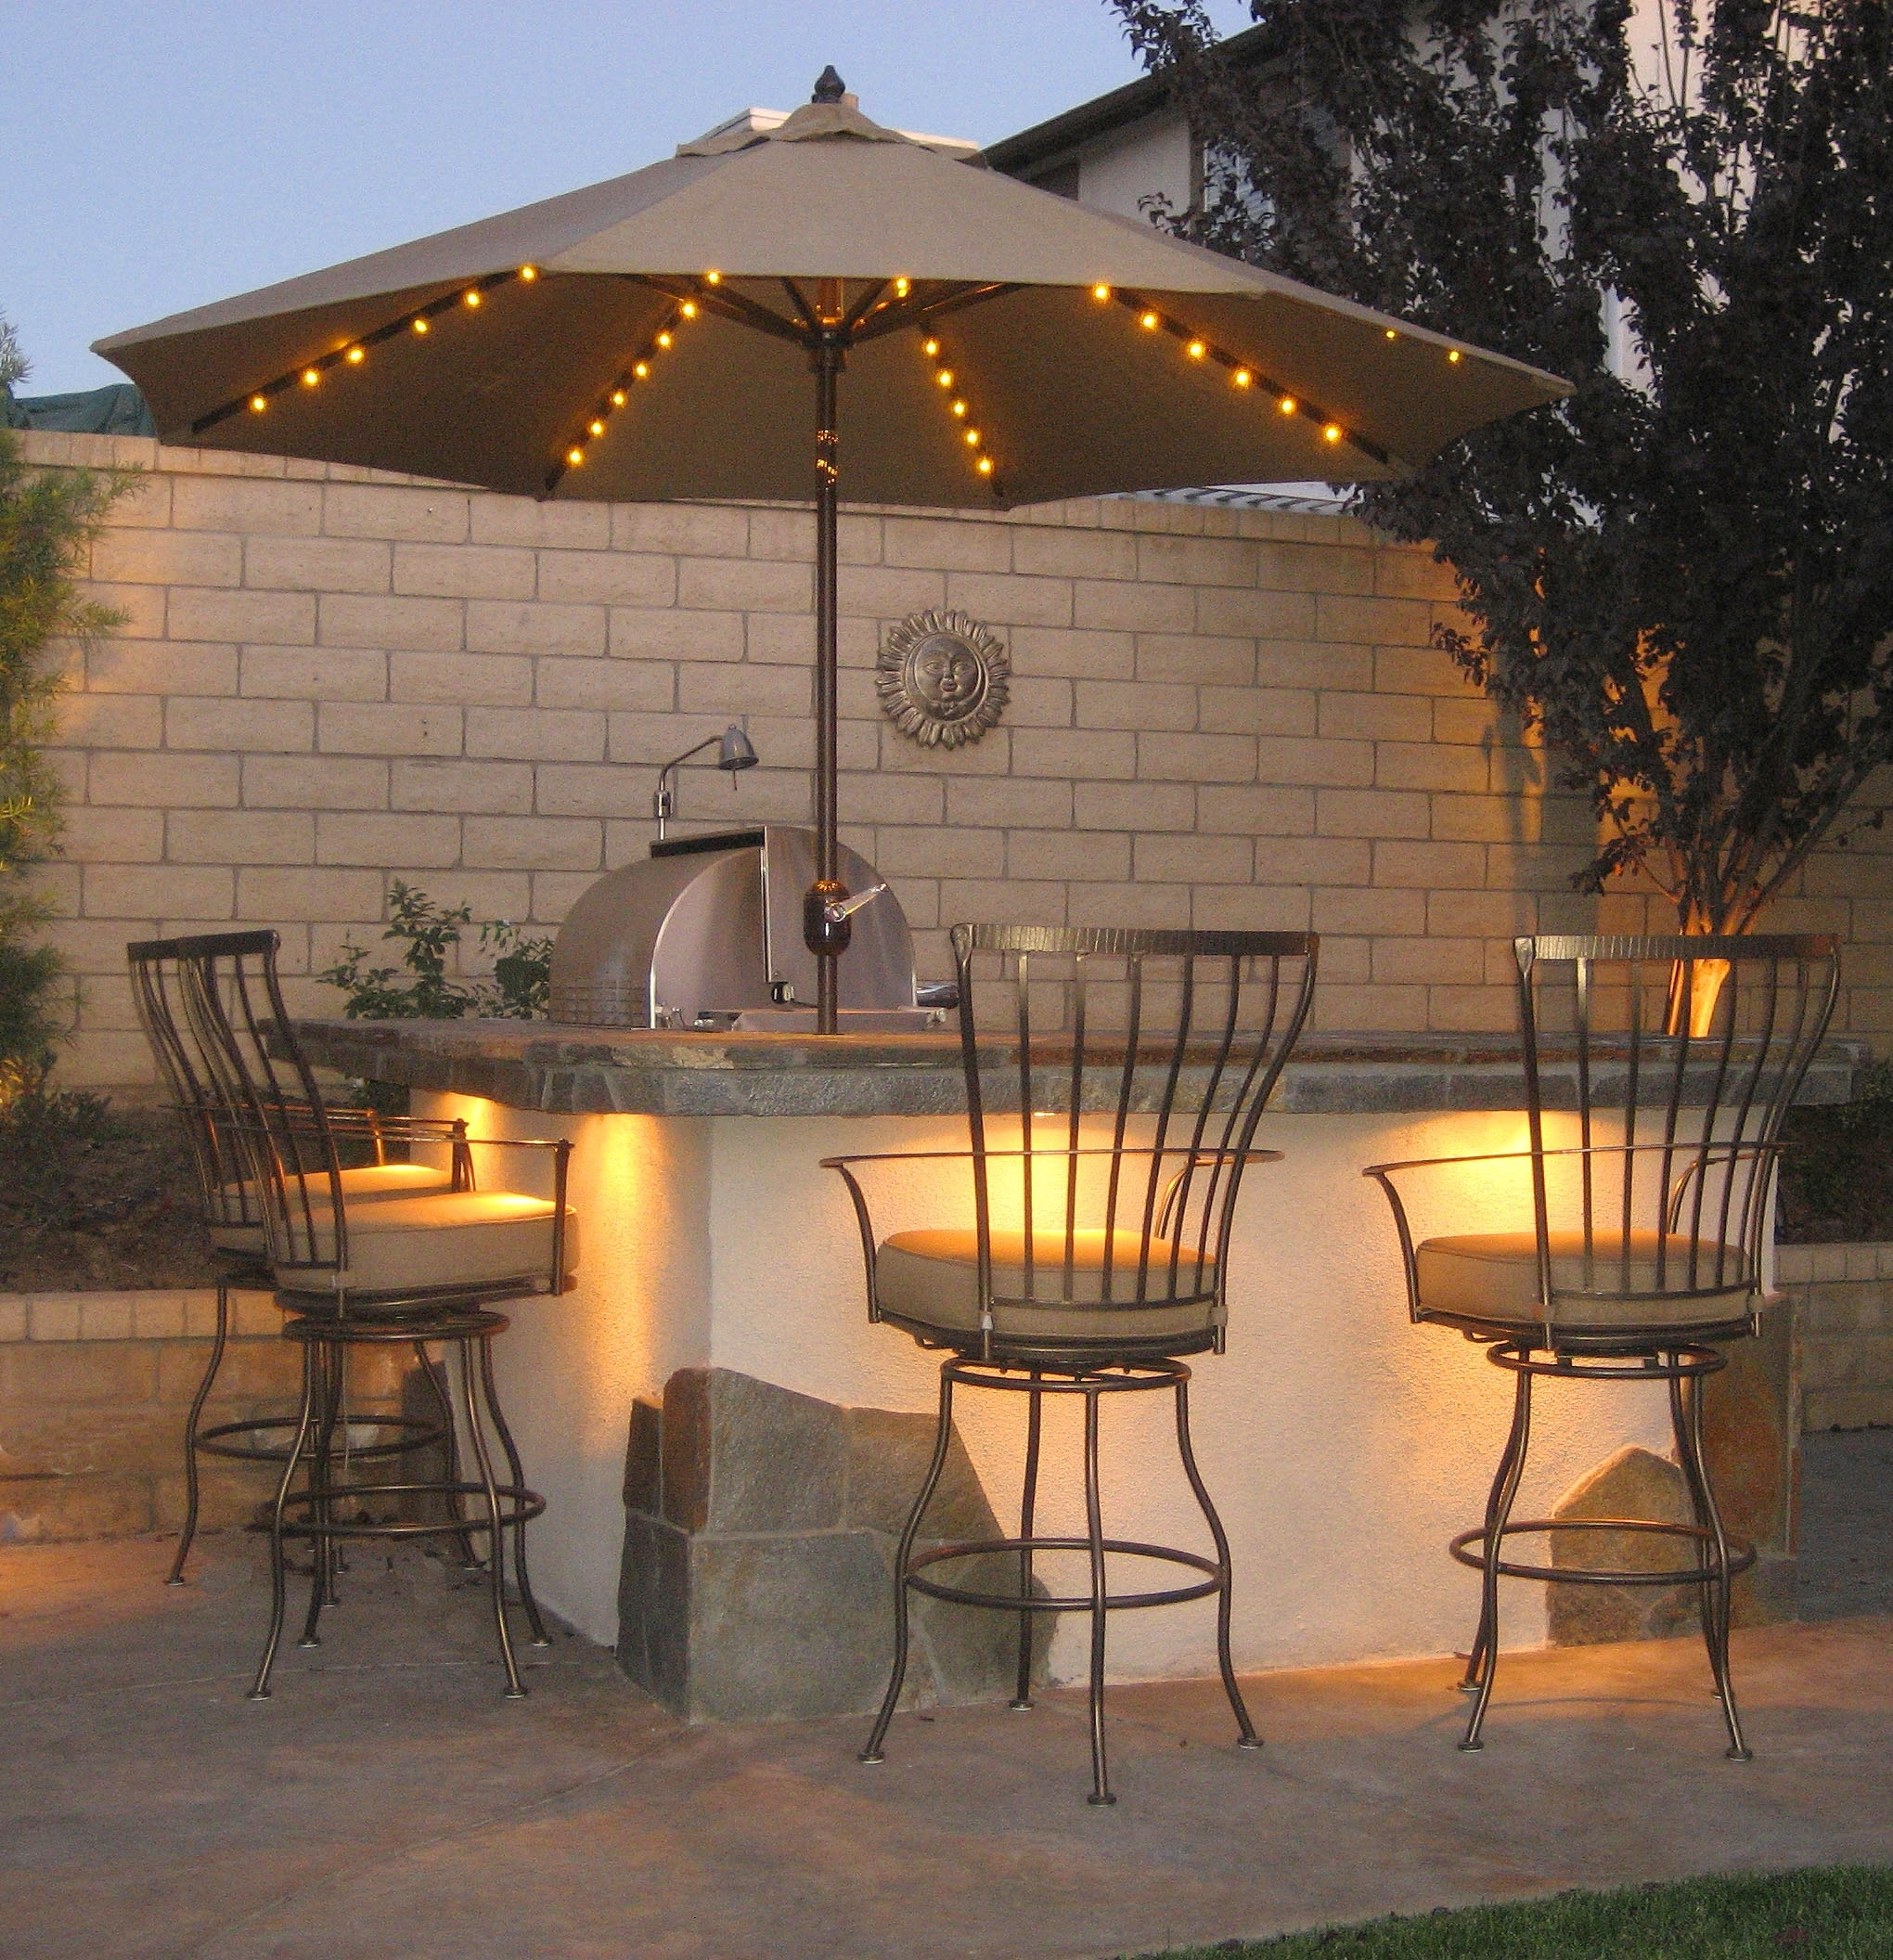 Lighted Patio Umbrellas — Mistikcamping Home Design : Different In Newest Patio Umbrella Lights (Gallery 10 of 20)